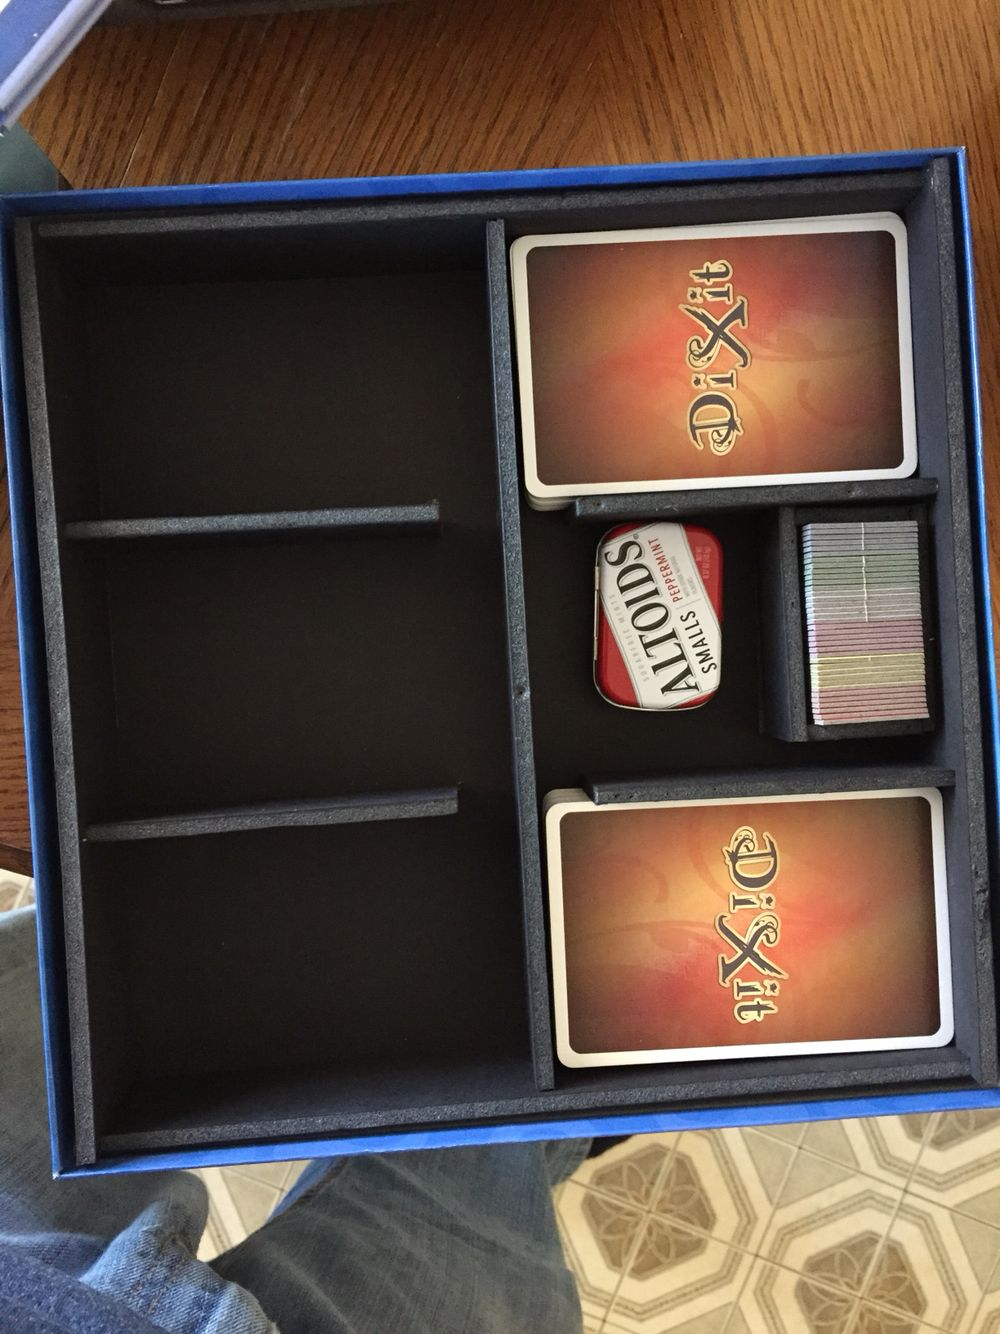 Made room for my new dixit explanation